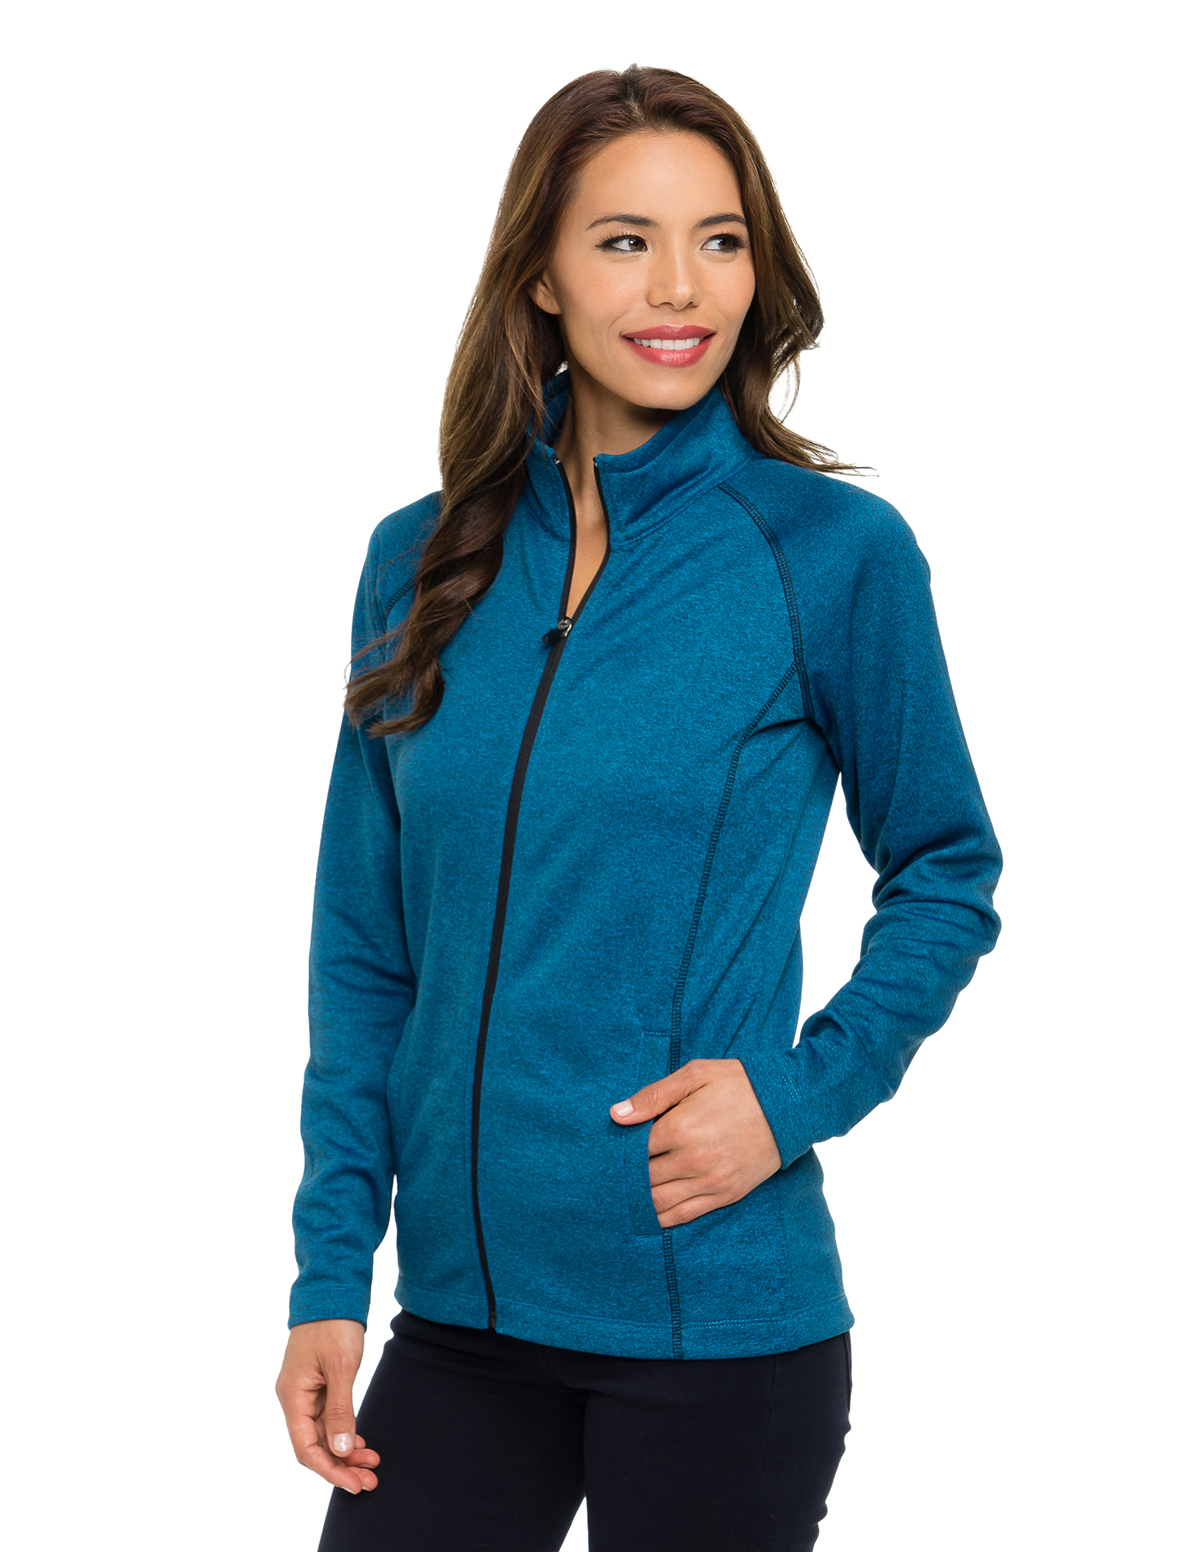 Tri-Mountain Performance FL7370 - Haze Women's 100% Polyester Heather Fleece Jacket